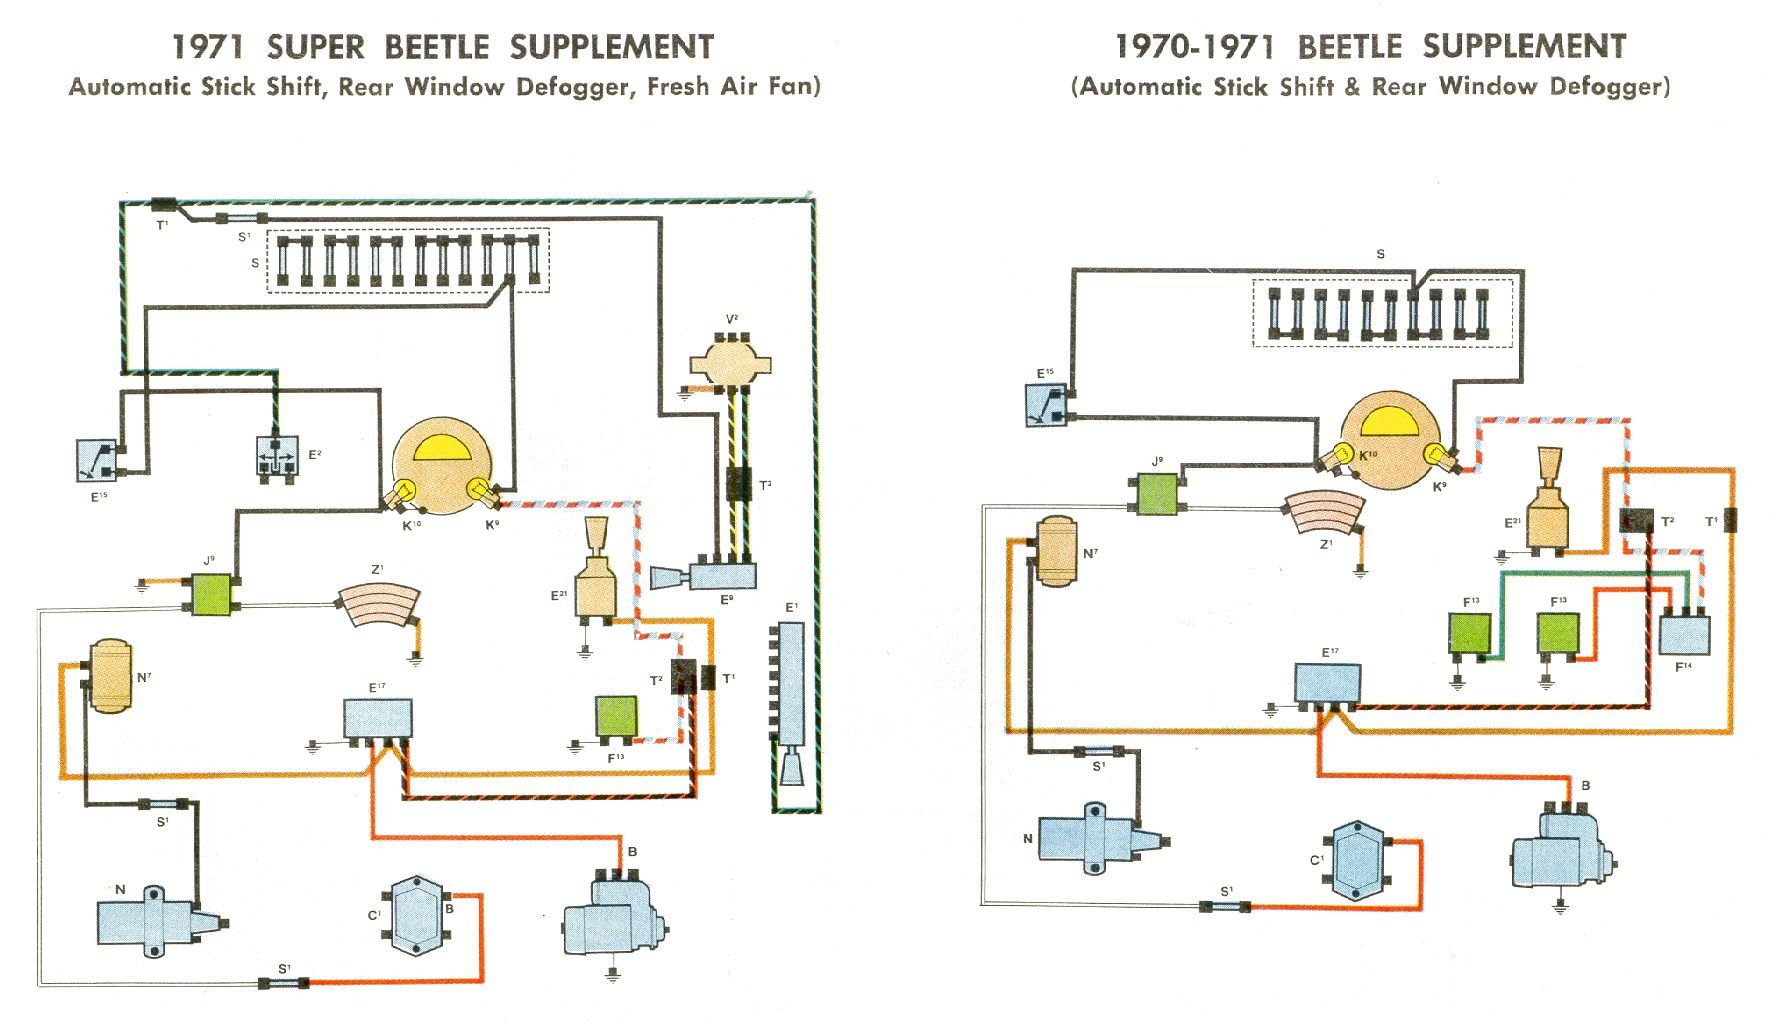 bug_7071_supplement 1969 71 beetle wiring diagram thegoldenbug com 1972 vw beetle fuse box diagram at nearapp.co